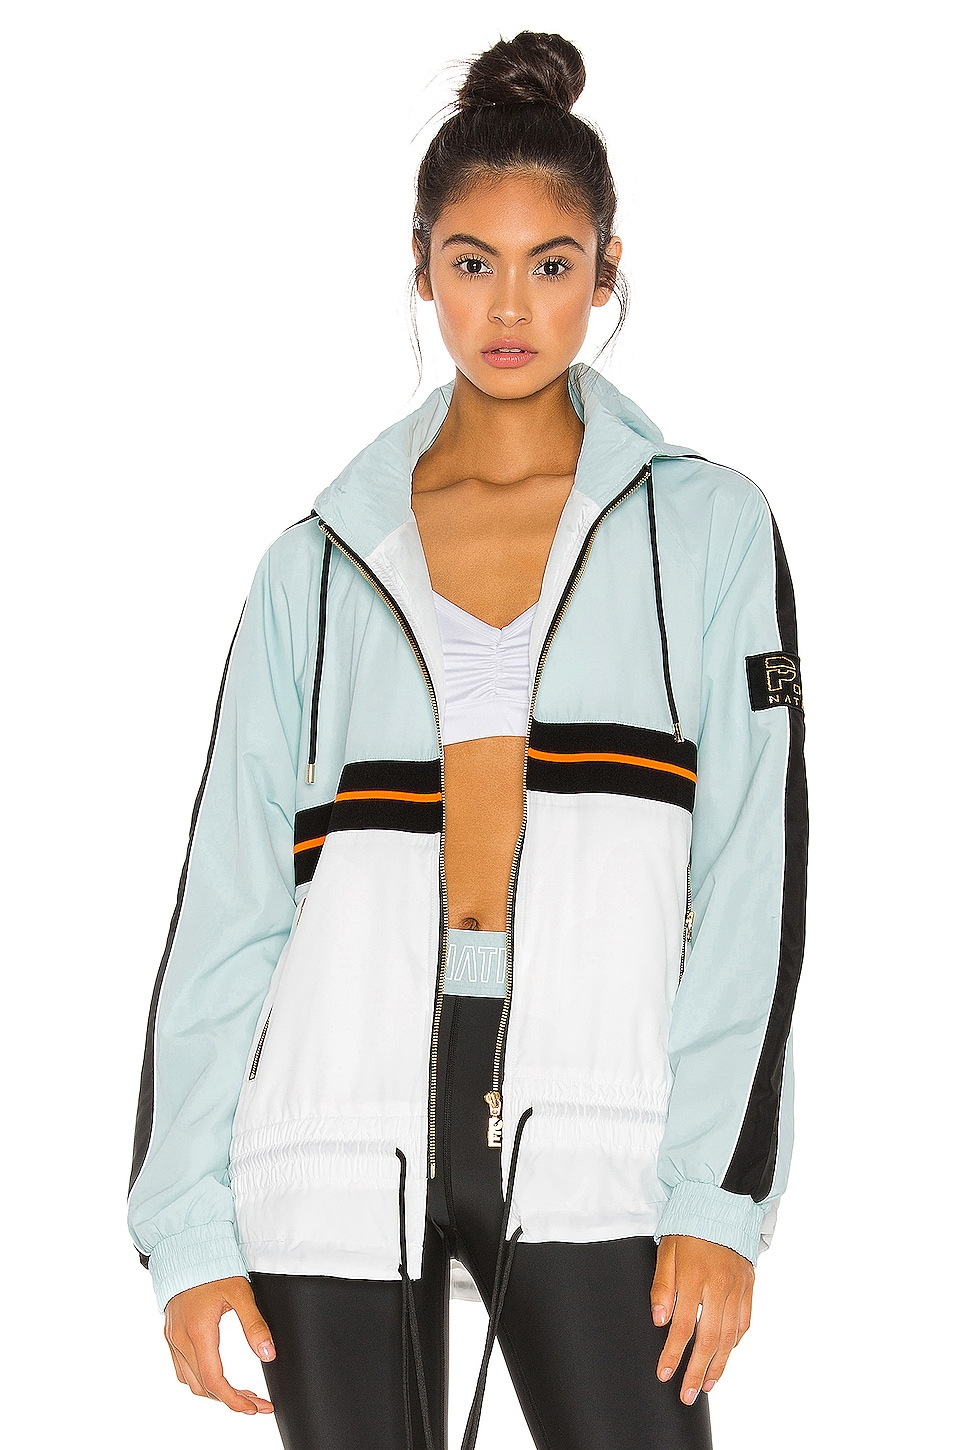 P.E Nation Man Up Jacket in Blue